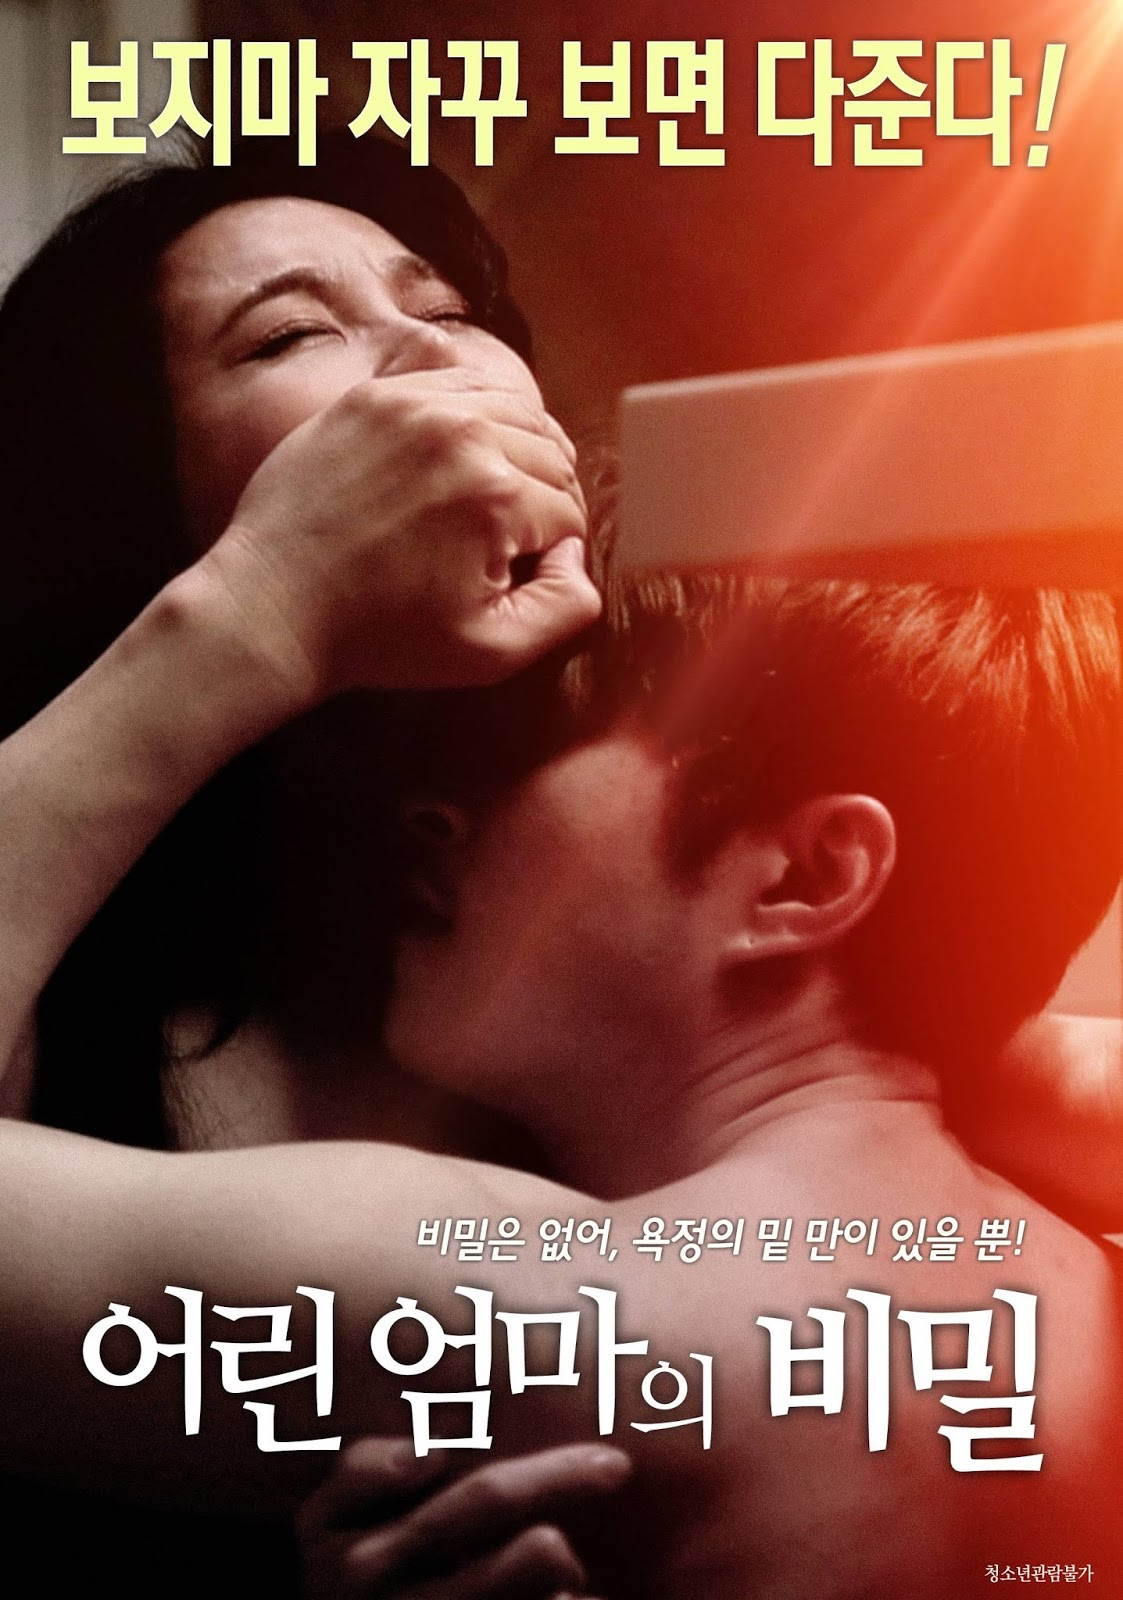 The Secret Of A Young Mother Full Korea 18+ Adult Movie Online Free